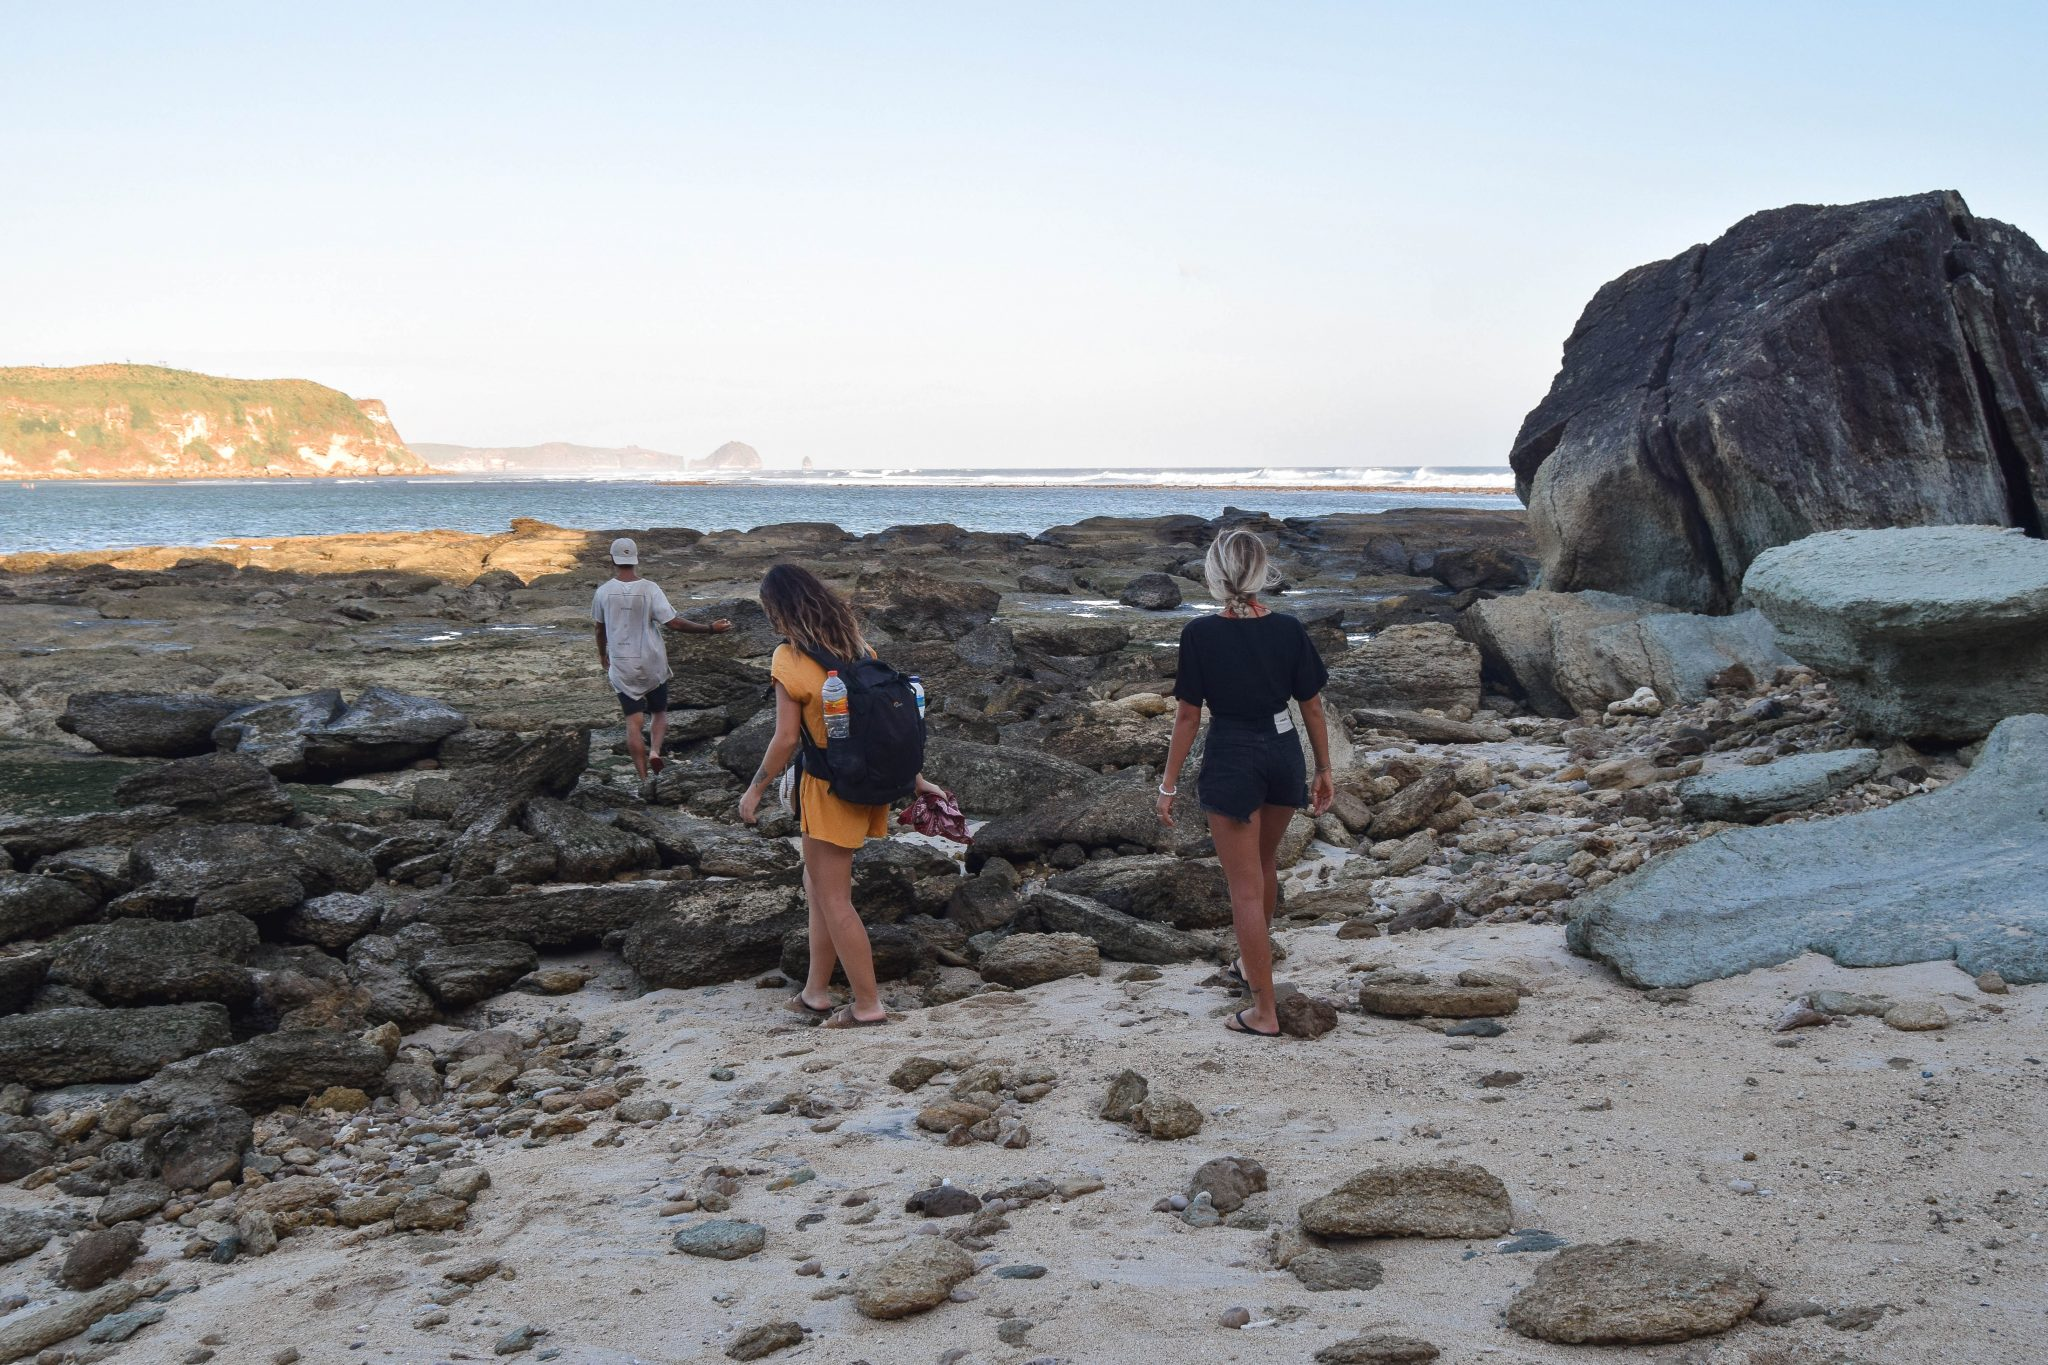 Wanderers & Warriors - Charlie & Lauren UK Travel Couple - Batu Payung Lombok